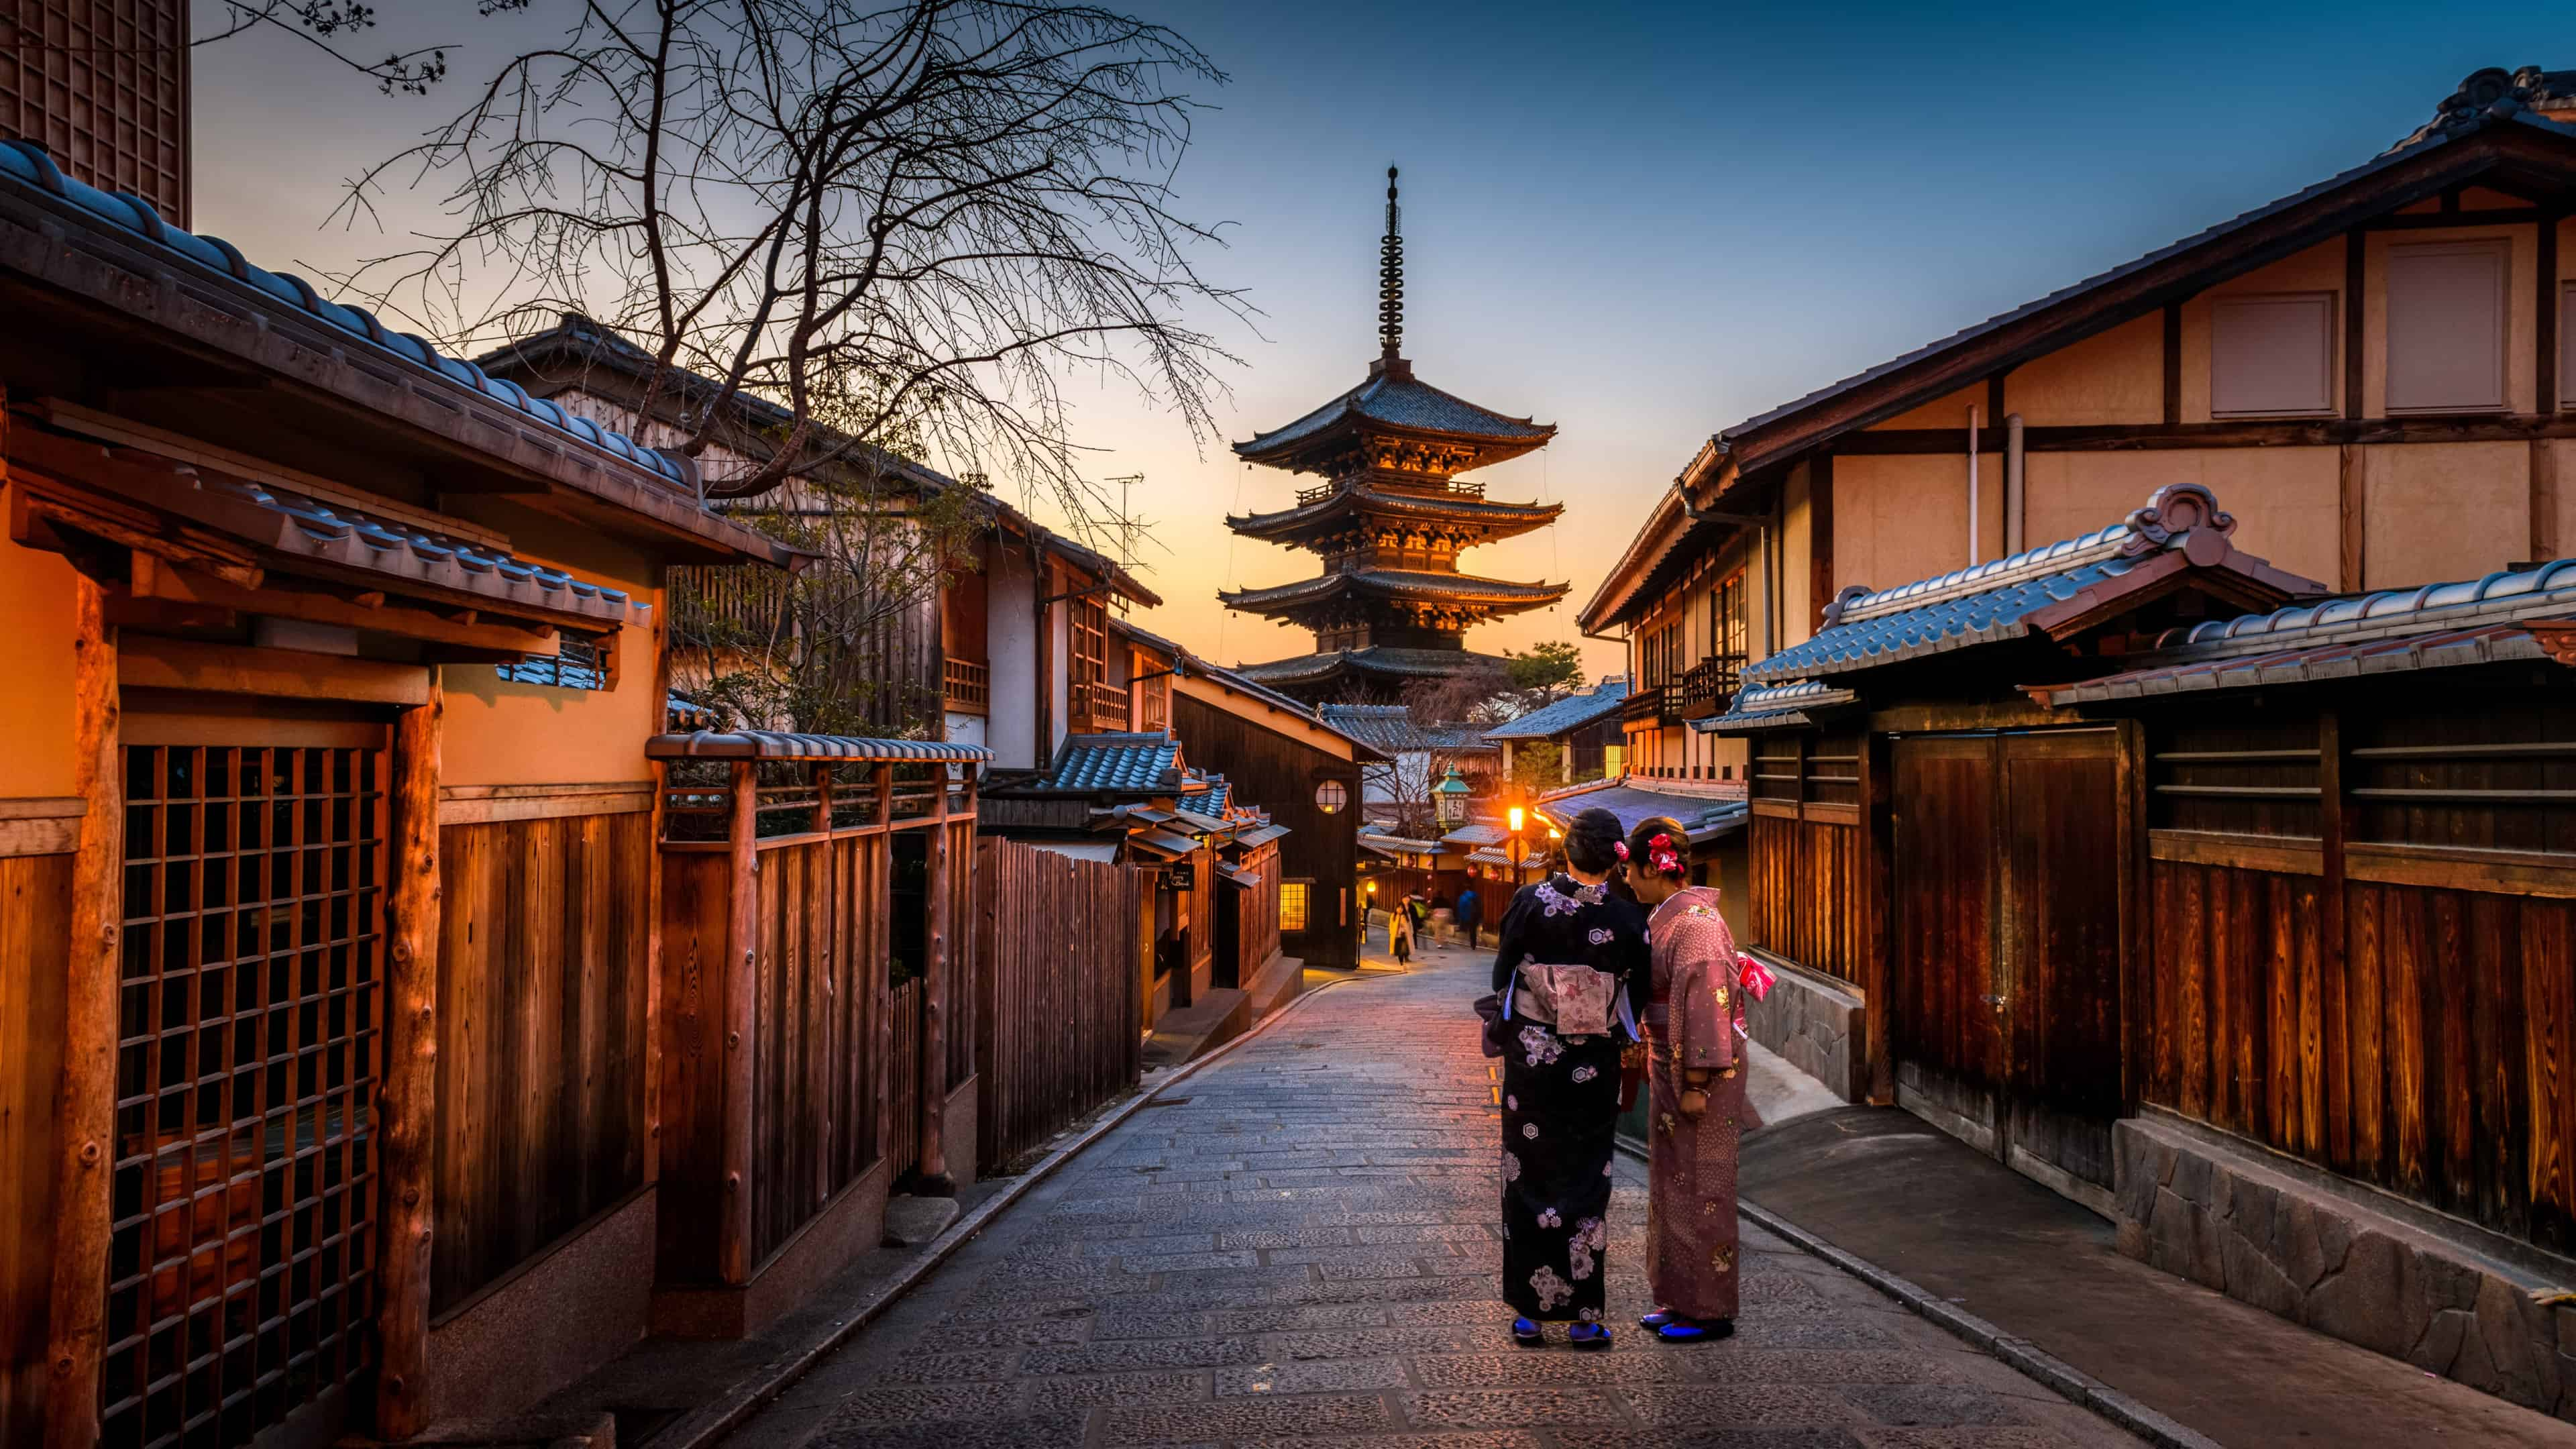 Yasaka Shrine Kyoto Japan Uhd 4k Wallpaper Pixelz - Architecture-design-in-kyoto-japan